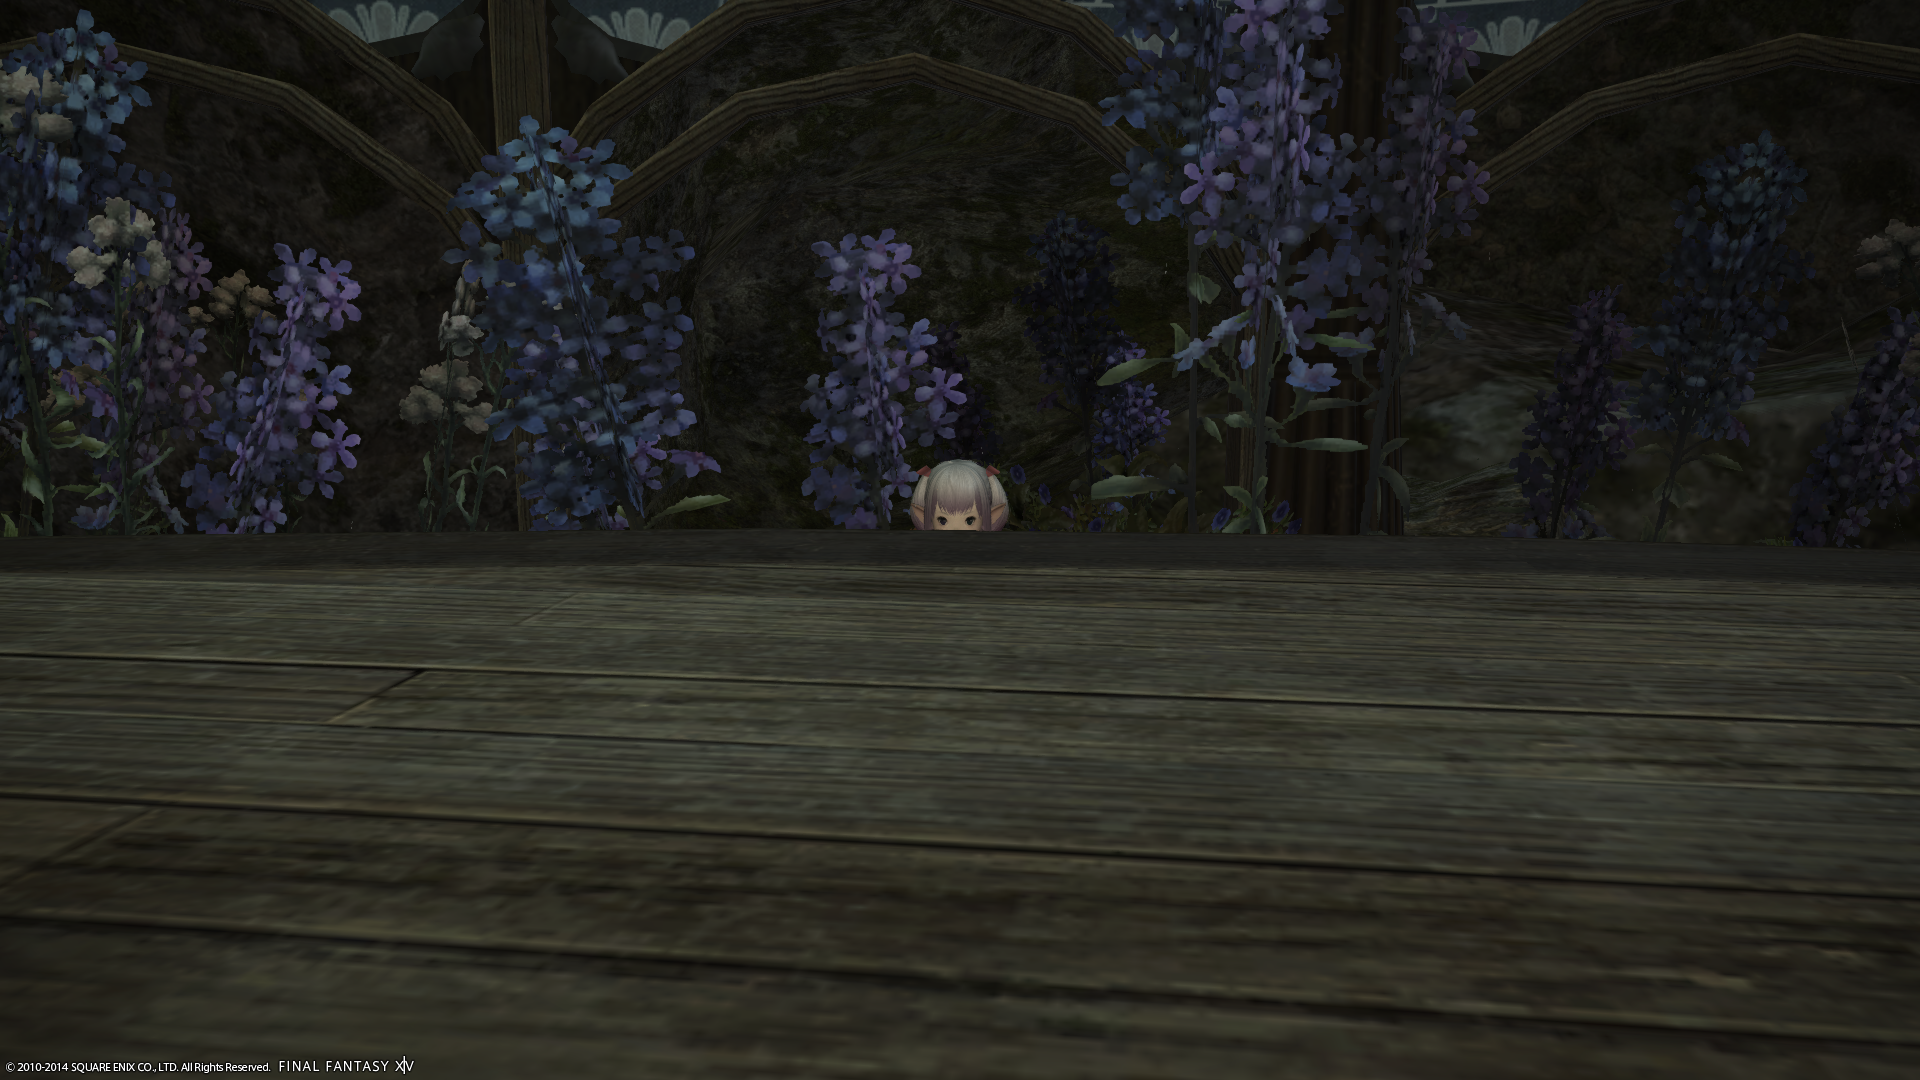 ratatapa ffxiv yeah thread picture cute lalafell